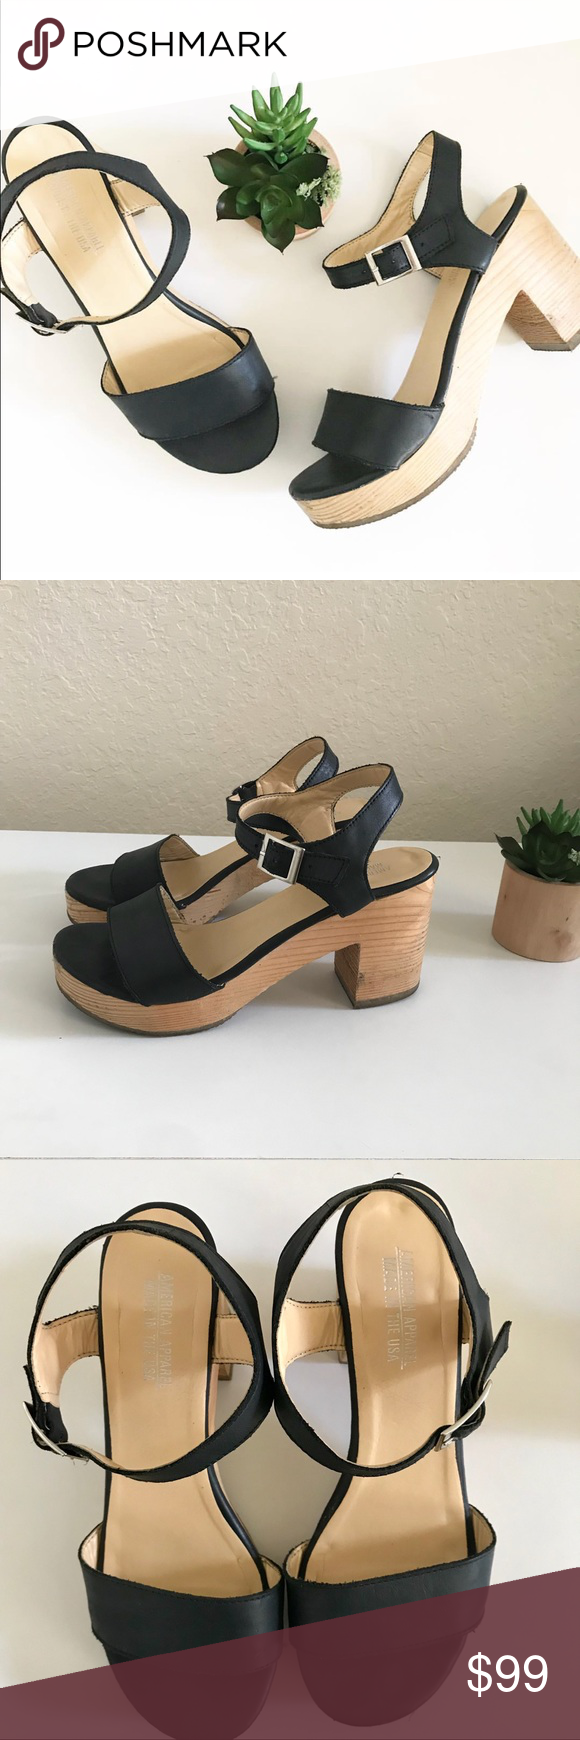 a81f395ccaf American Apparel Wooden Heel Sandal The iconic   coveted ORIGINAL American  Apparel Wooden Heel Sandal in black leather   wood. Made in the USA. Size 7.